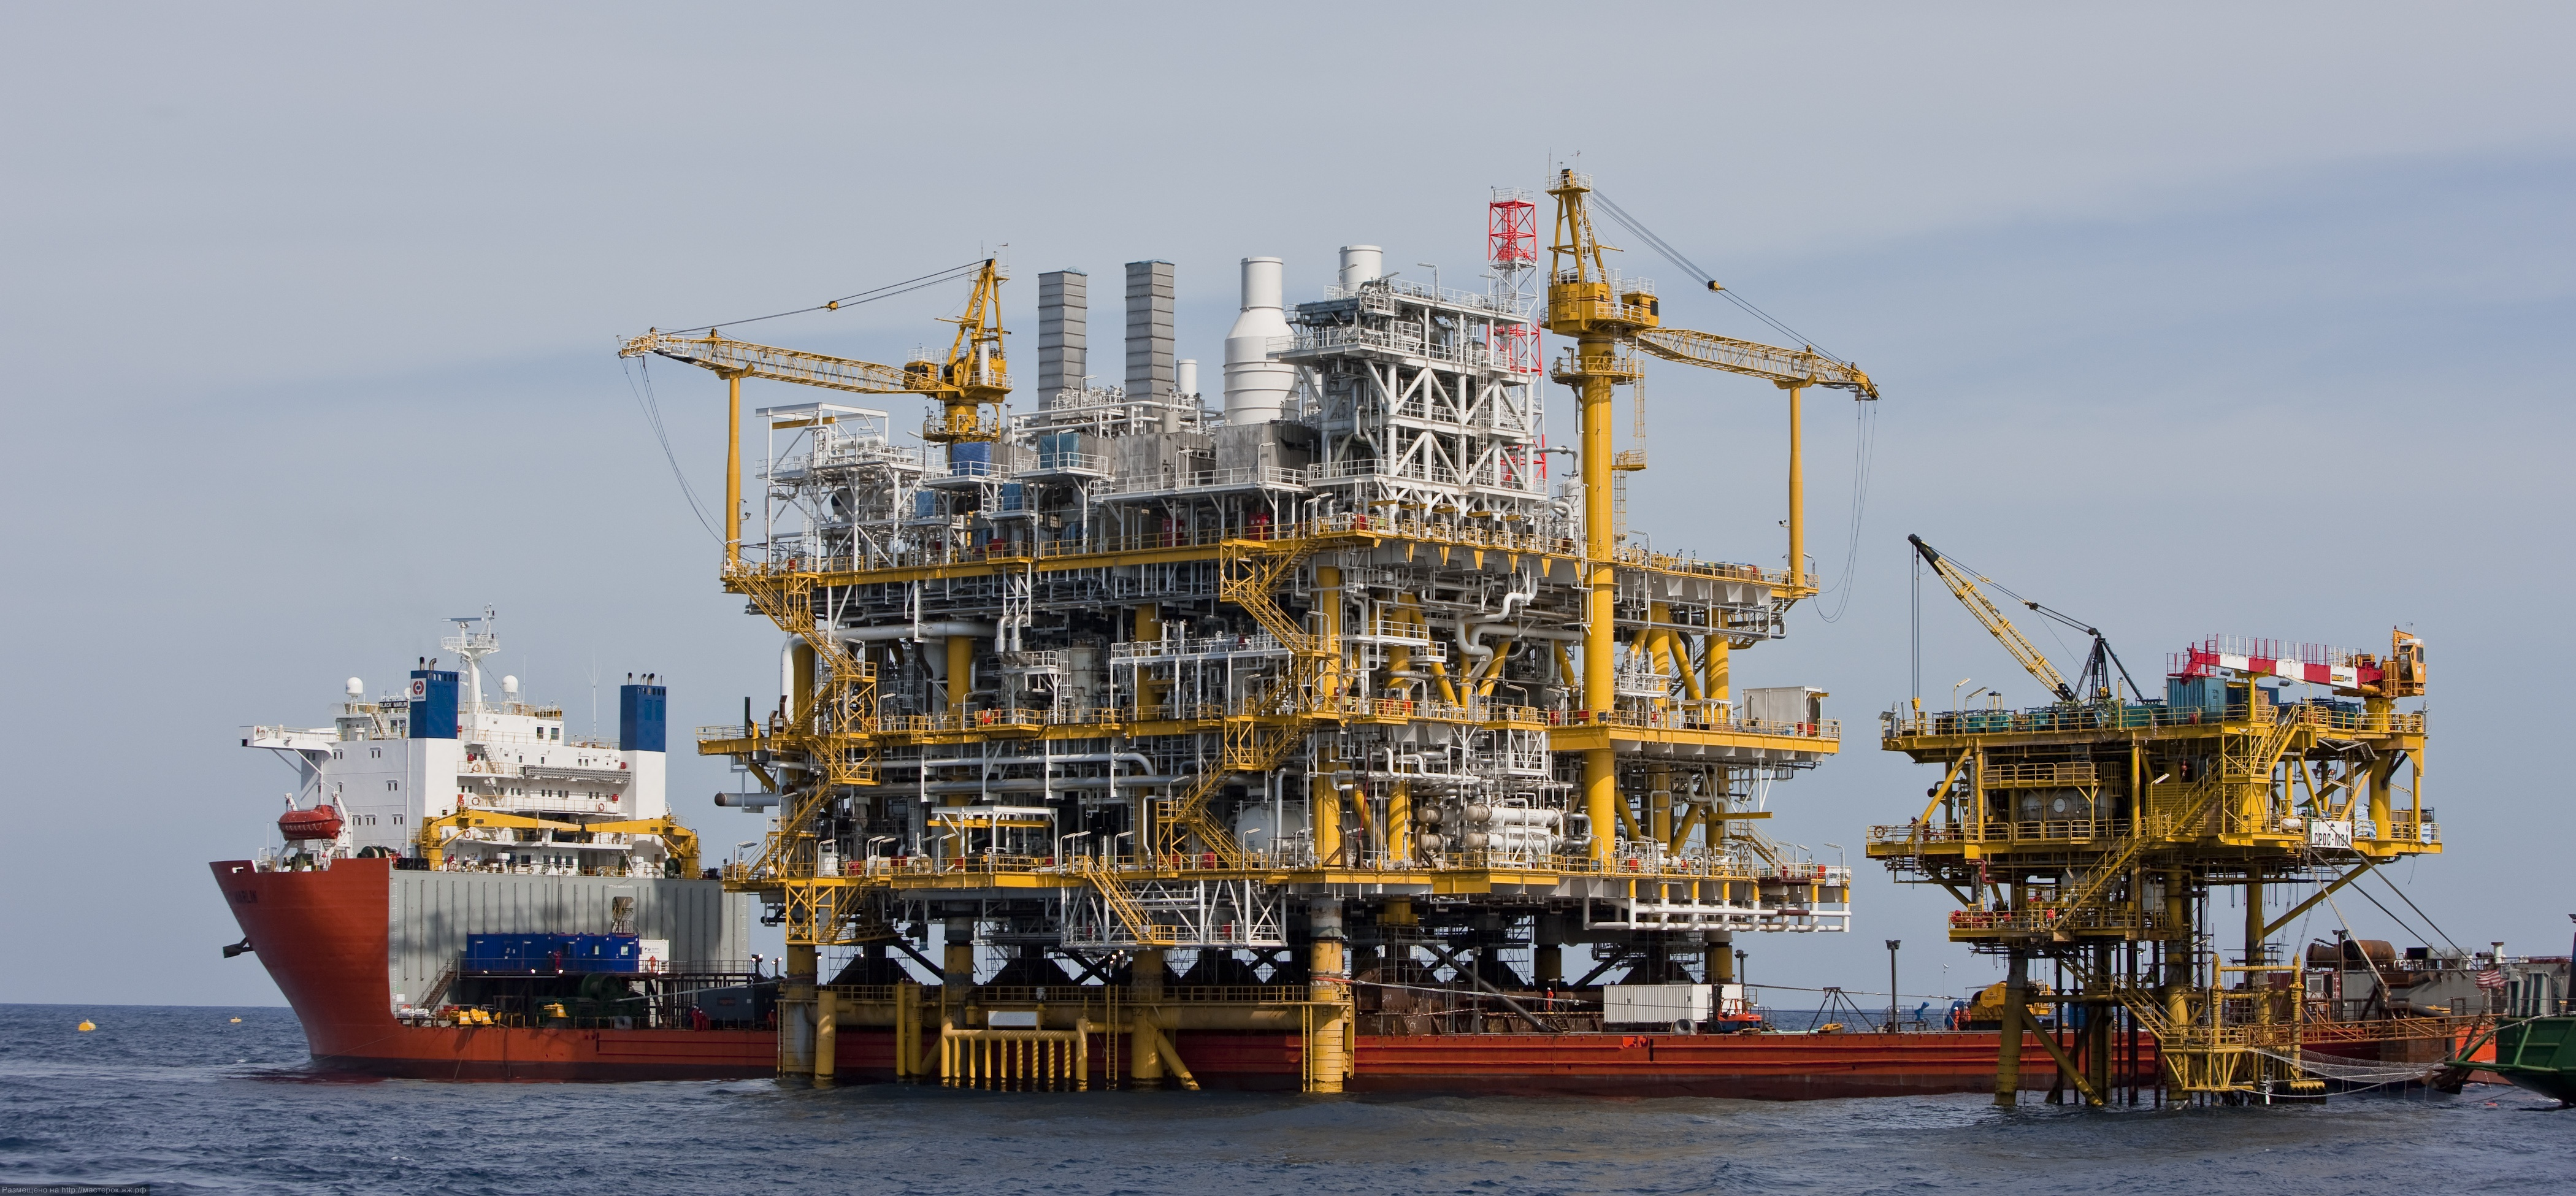 Dockwise shipping gas production platform installation in the Gulf of Thailand